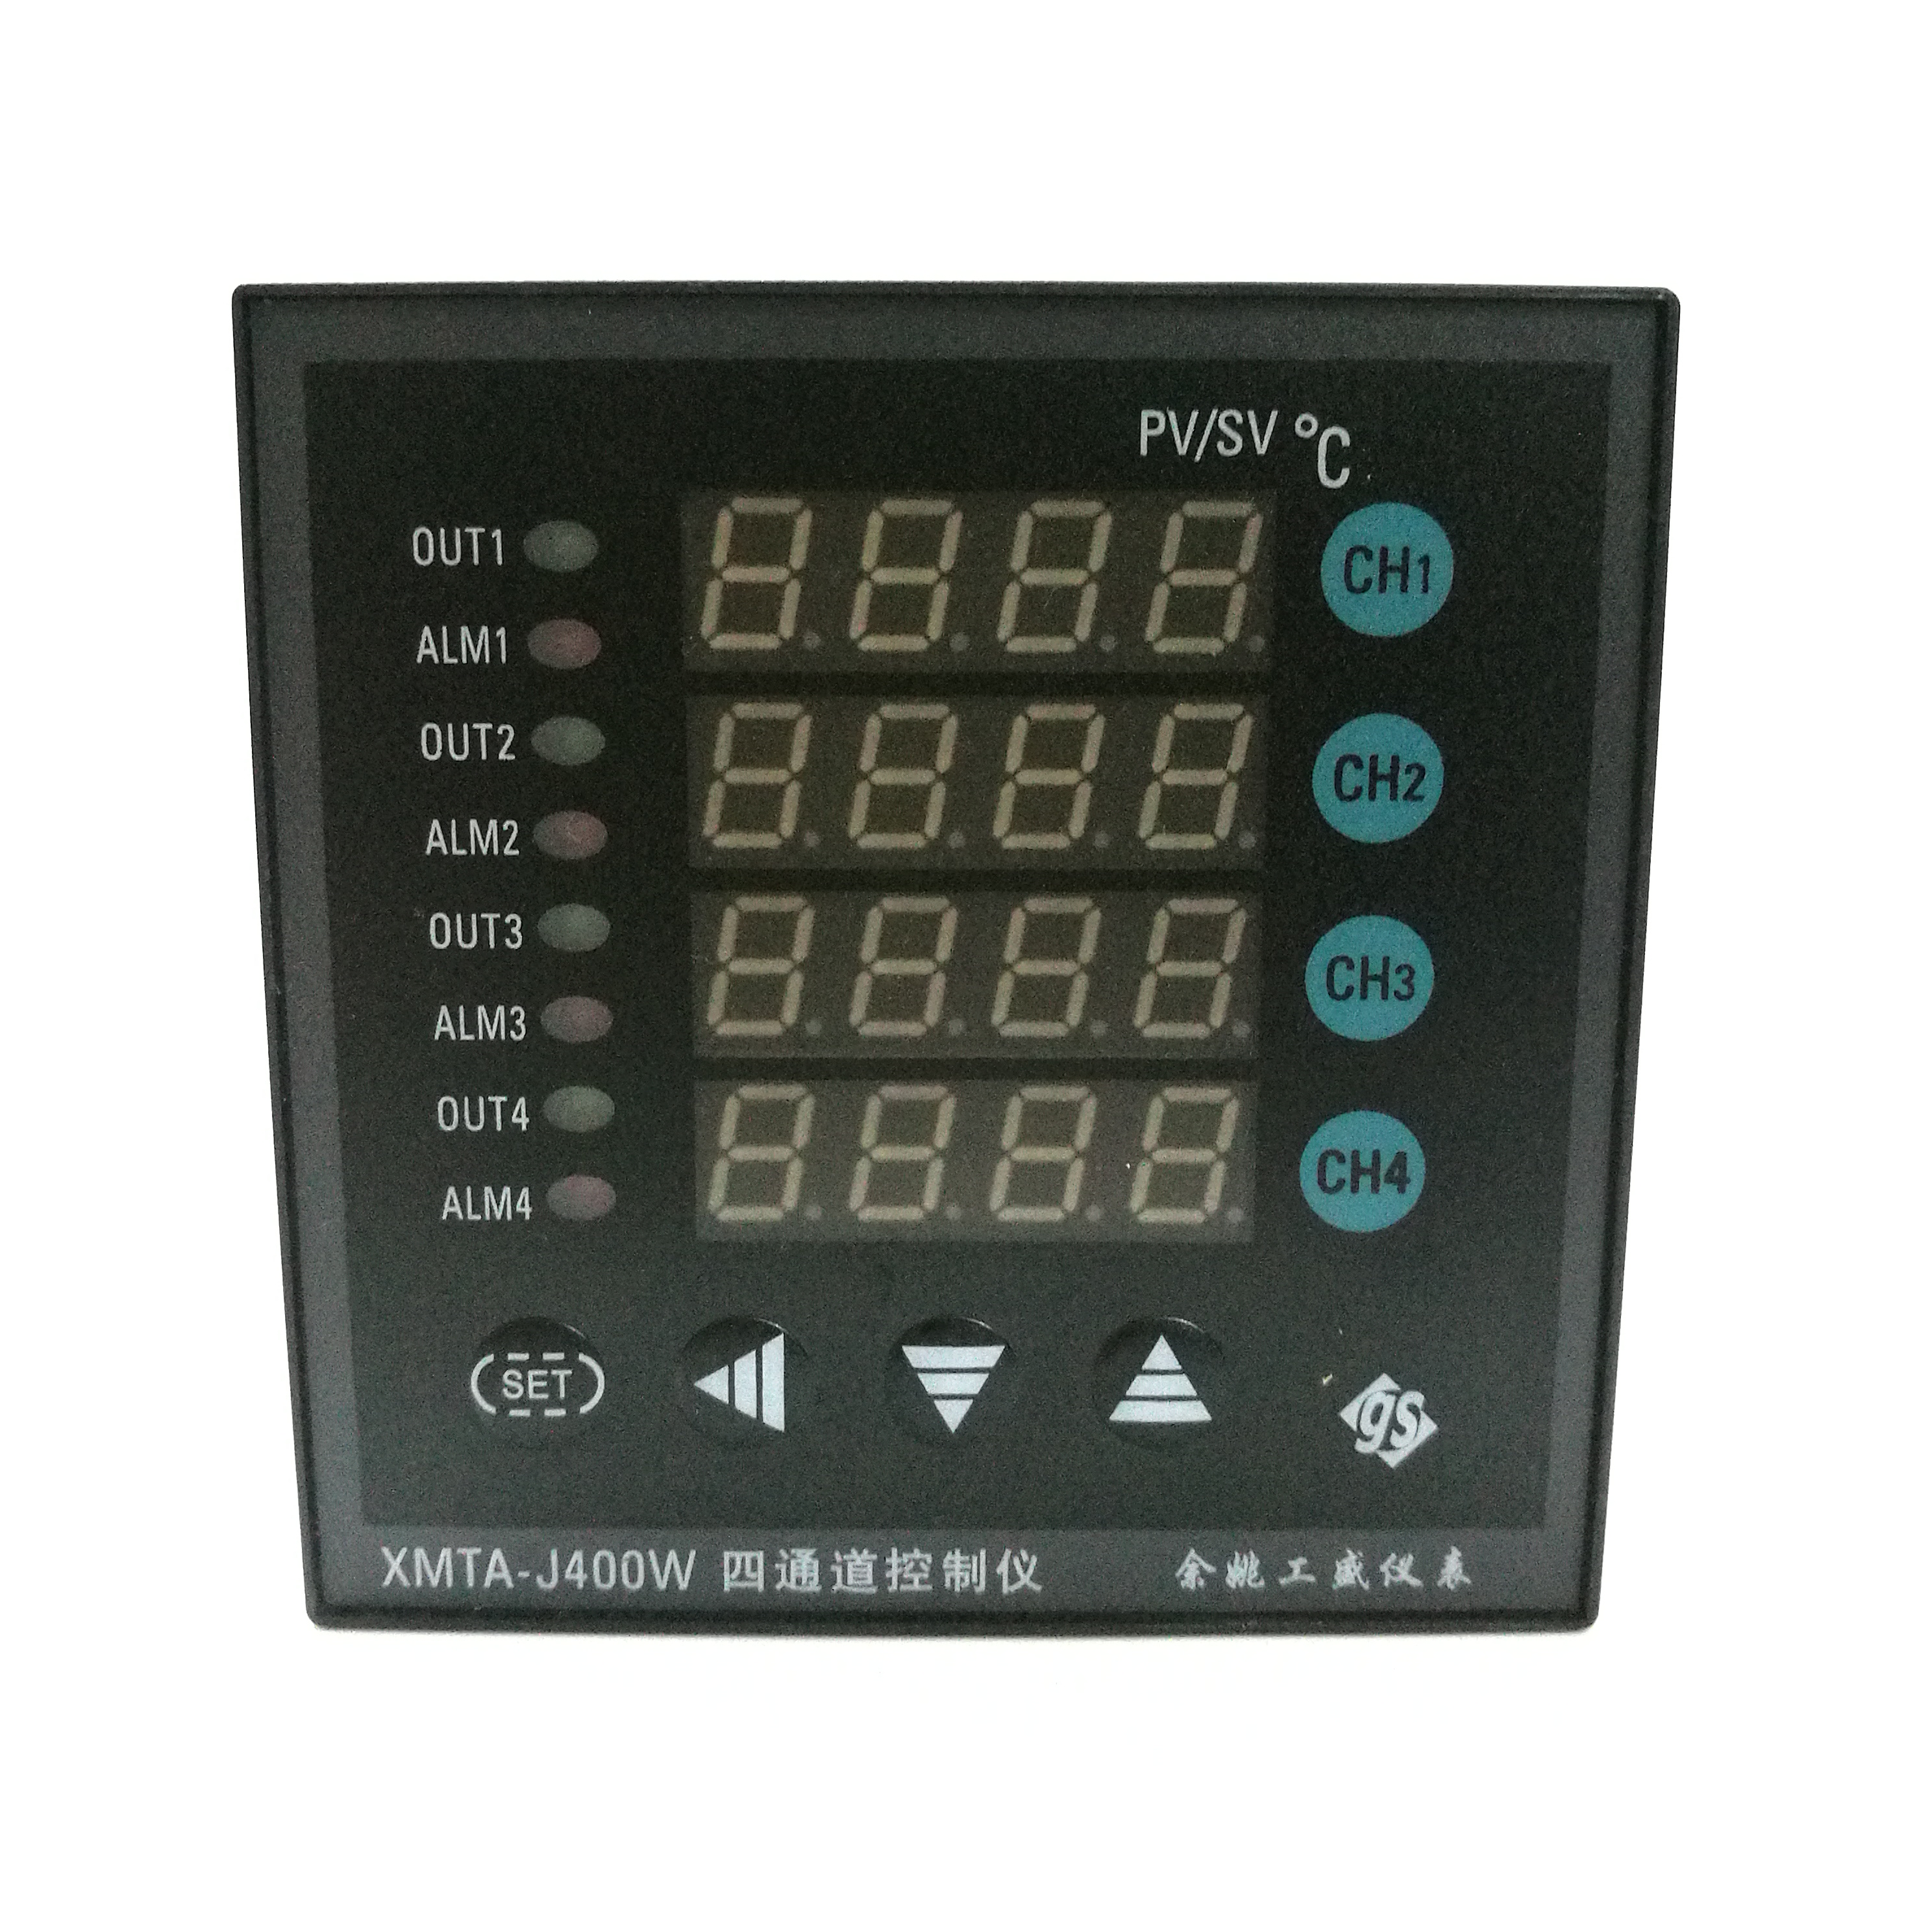 4 way temperature controller four channel temperature controller 4 channel temperature control meter four temperature control